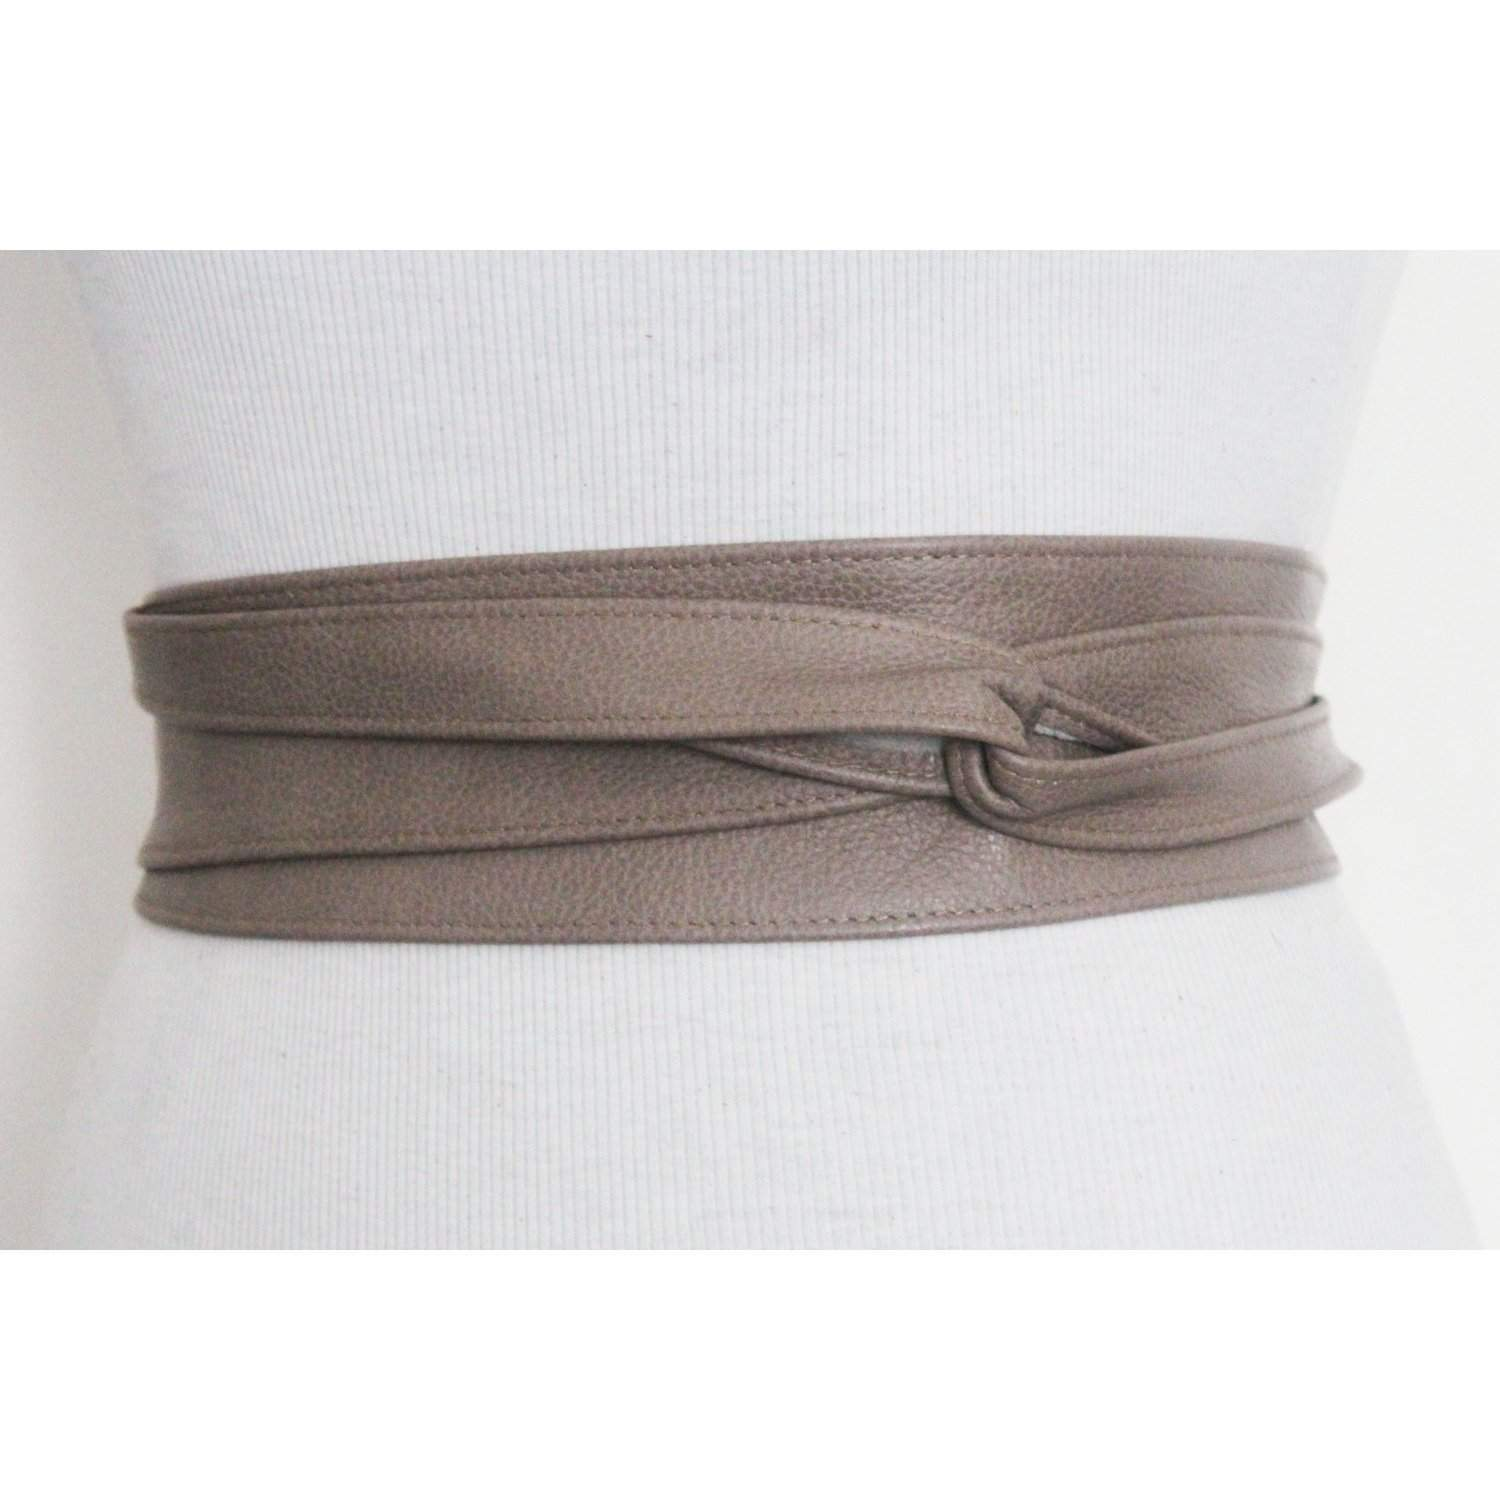 Taupe Brown Leather Obi Belt | Leather tie belt | Real Leather Belt| Handmade Corset Belt | Plus size belts - loveyaayaa